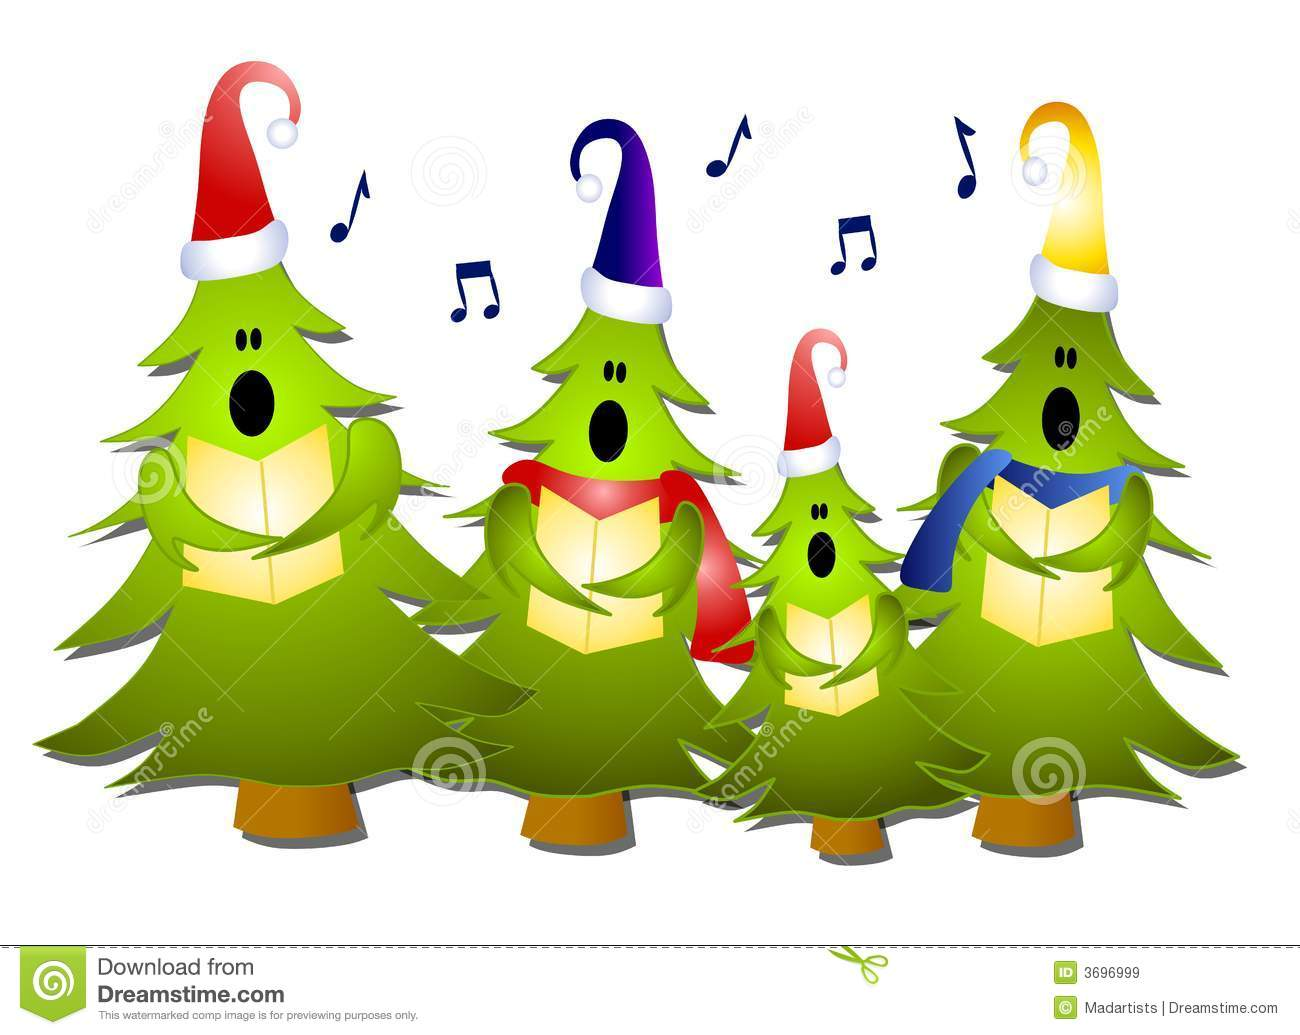 Christmas-music-notes-clipart-christmas-tree-carolers